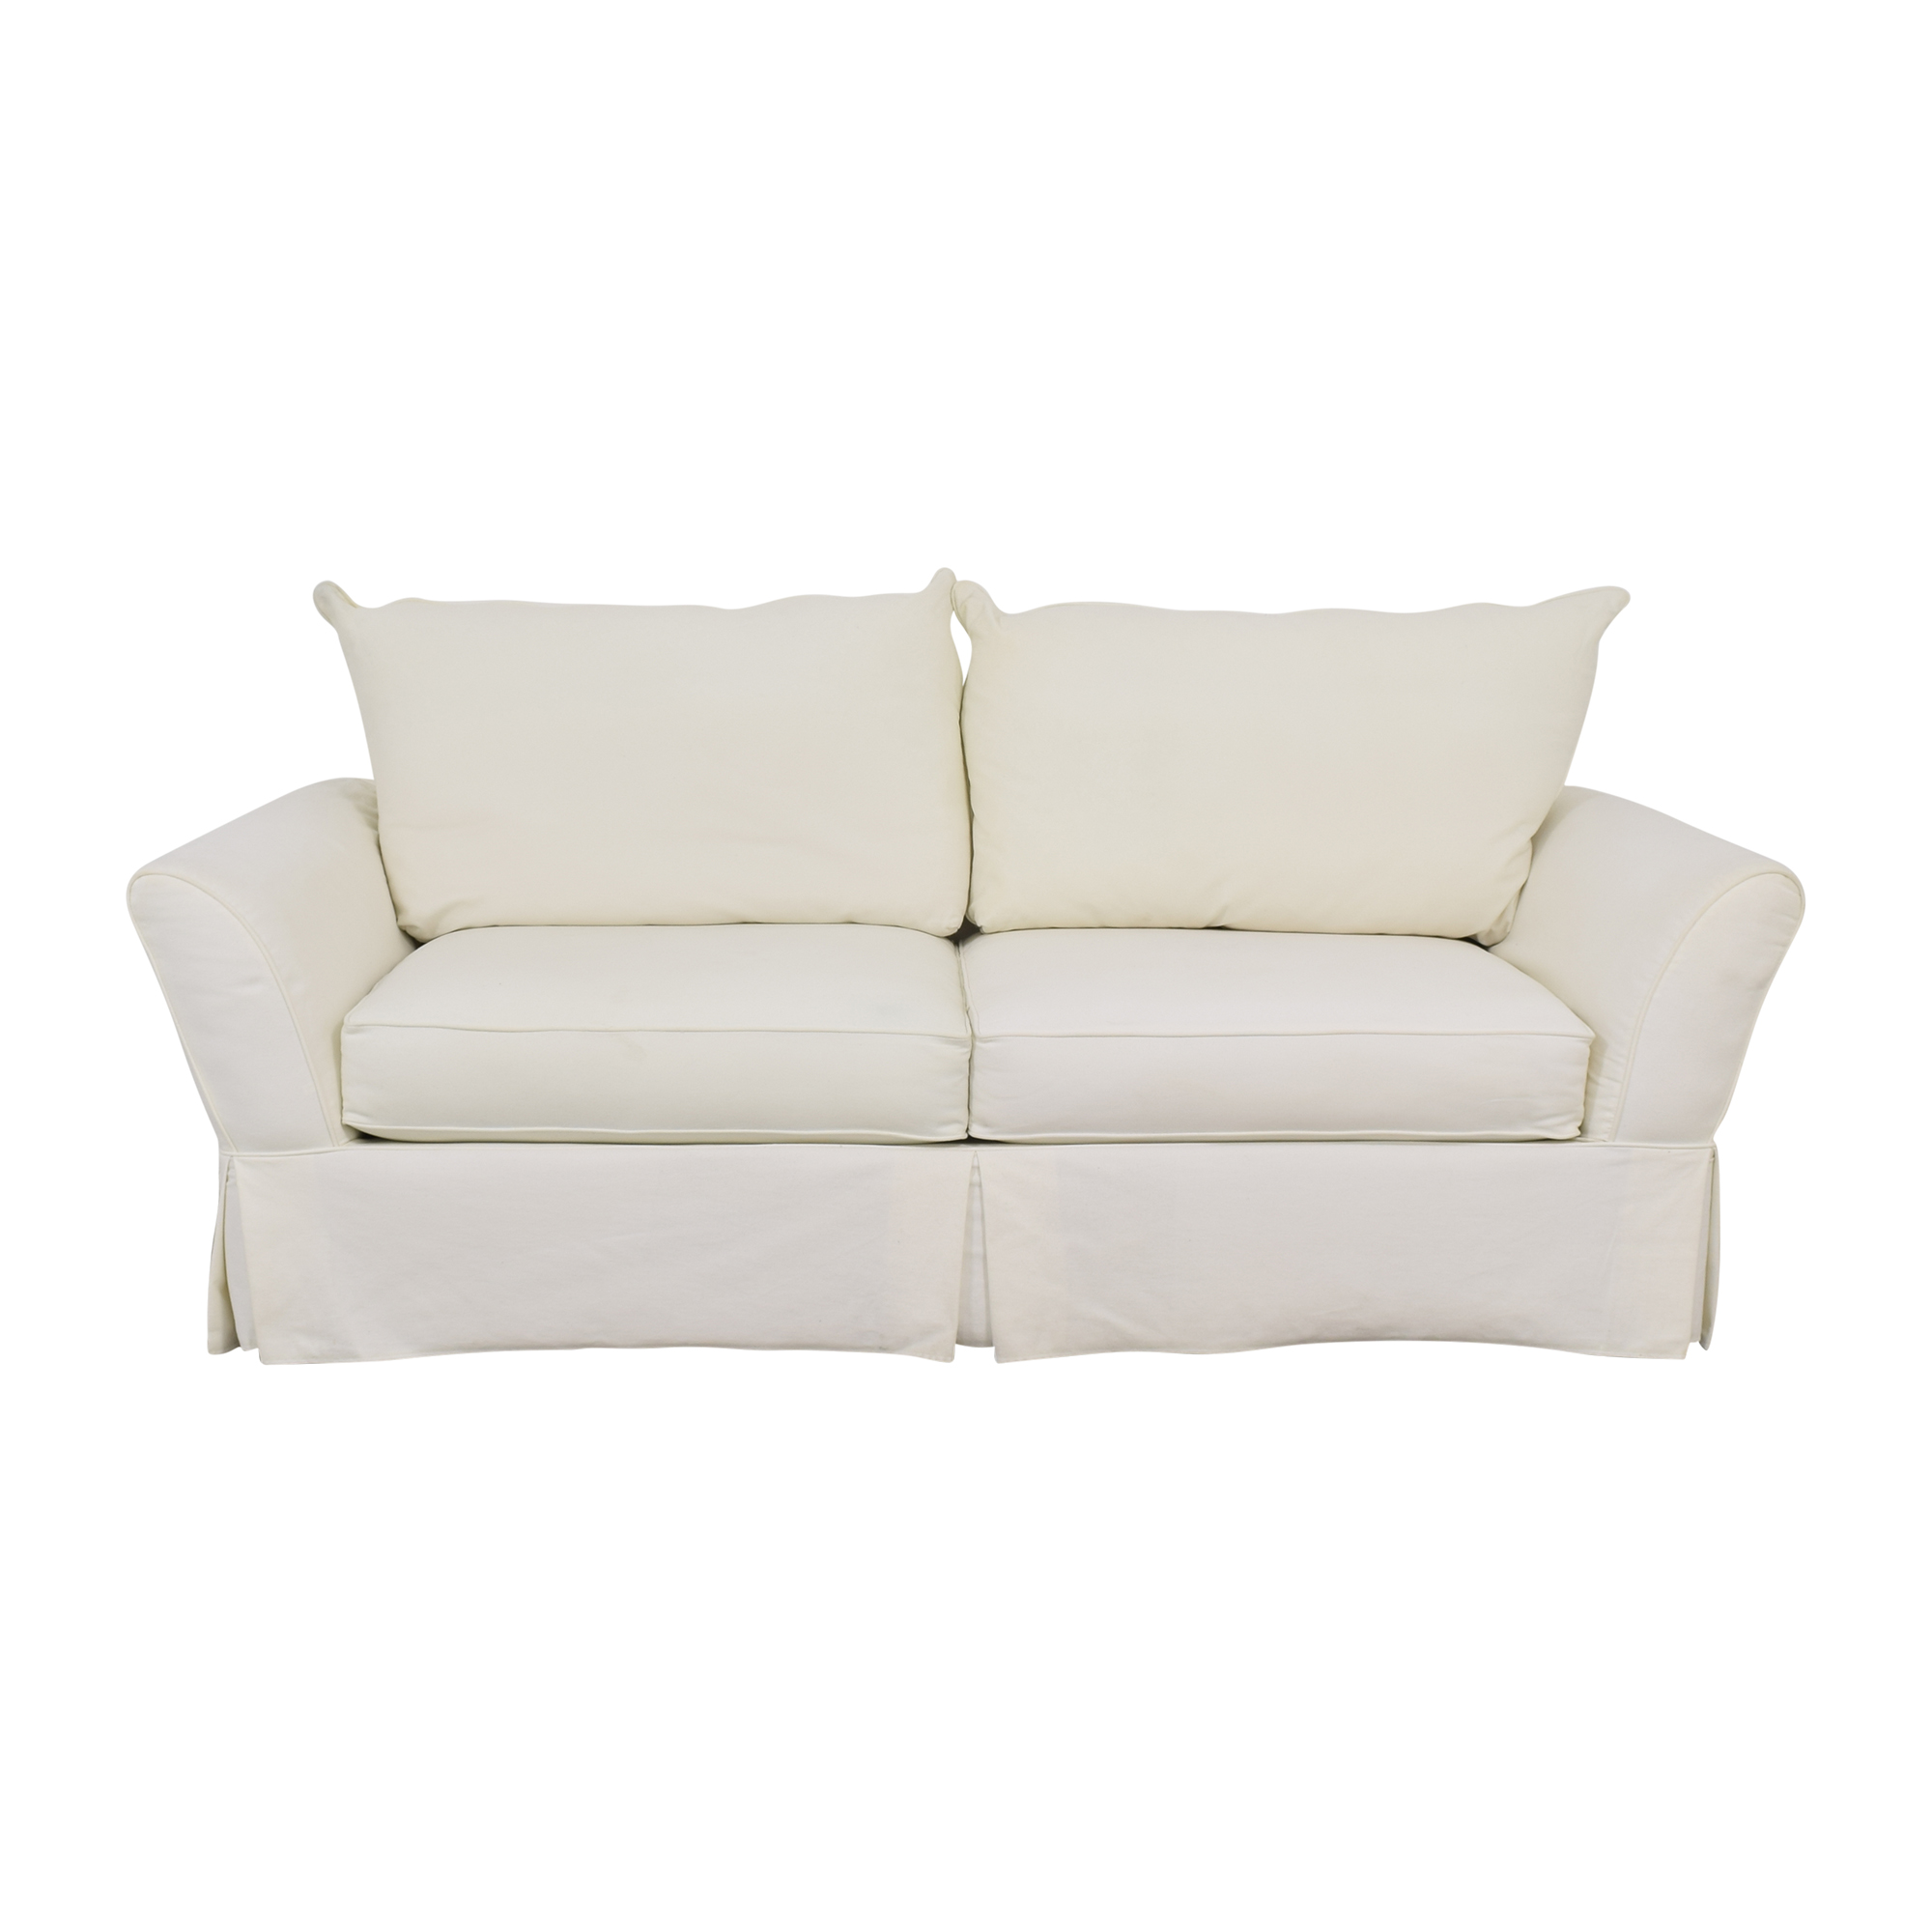 American Signature American Signature Two Cushion Sofa